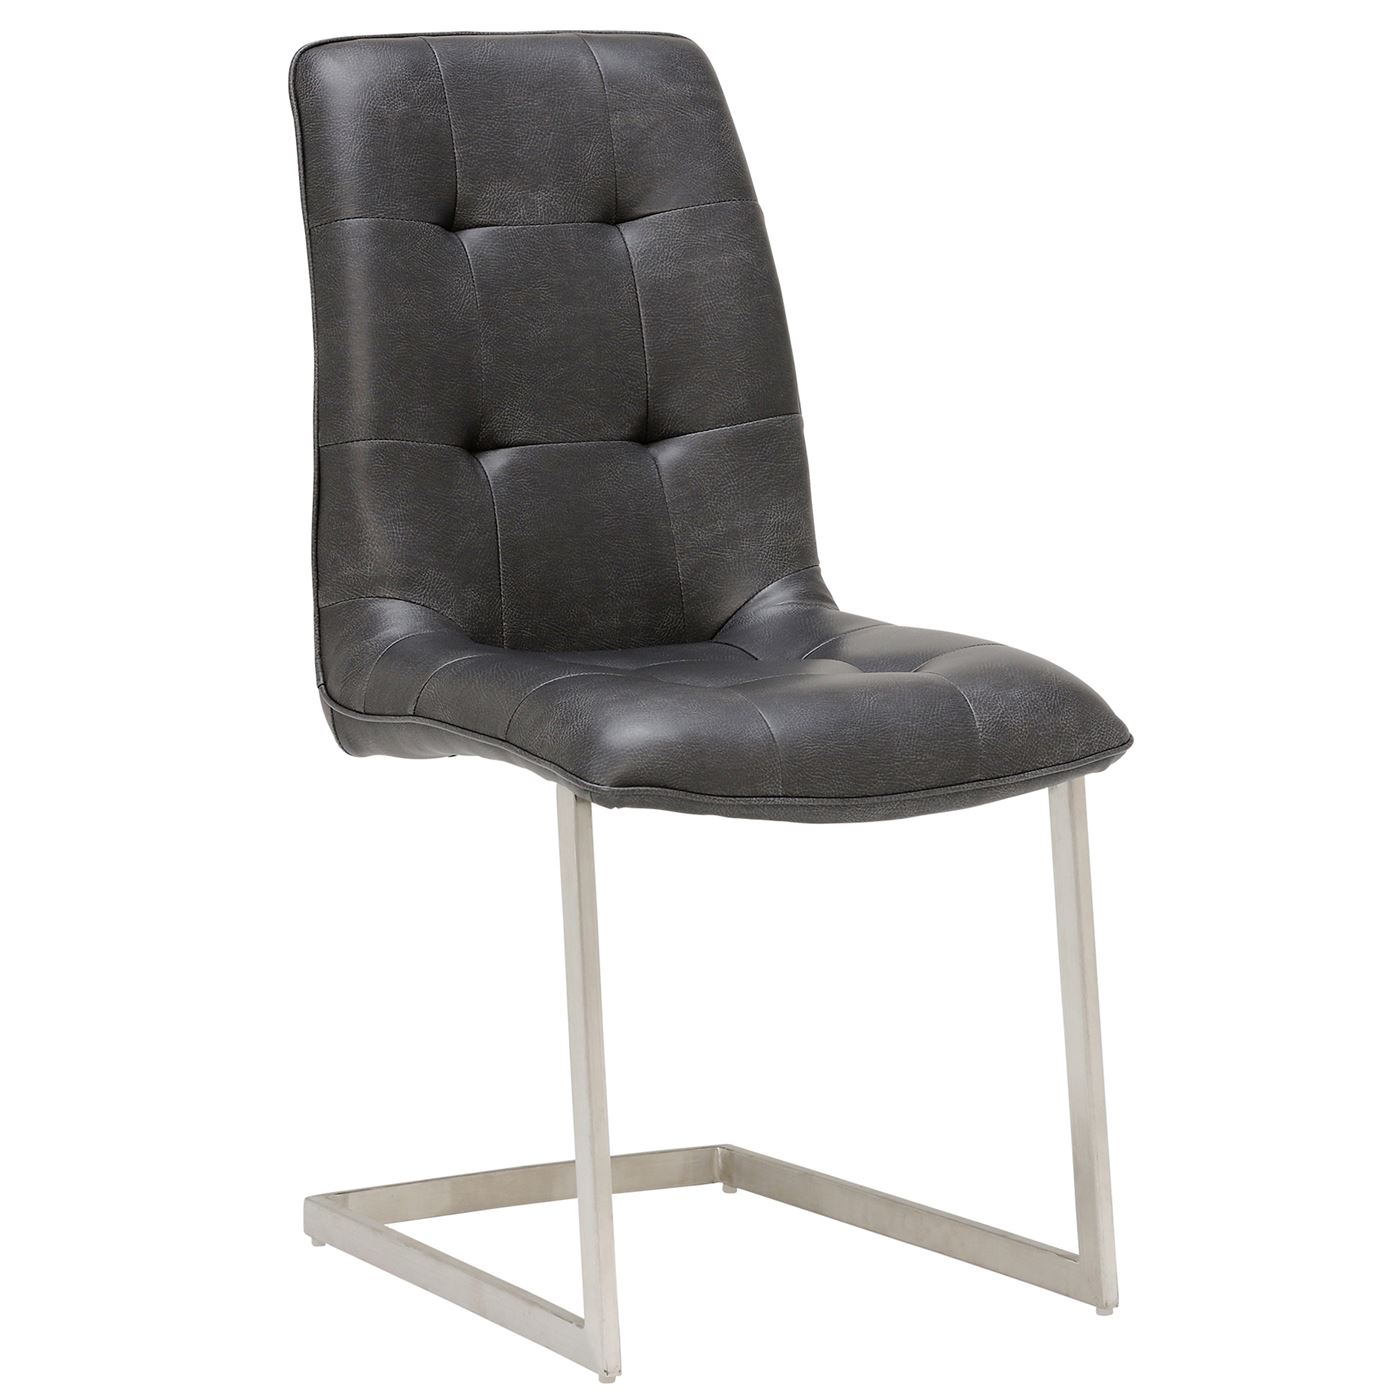 Ericka Upholstered Dining Chair, Grey